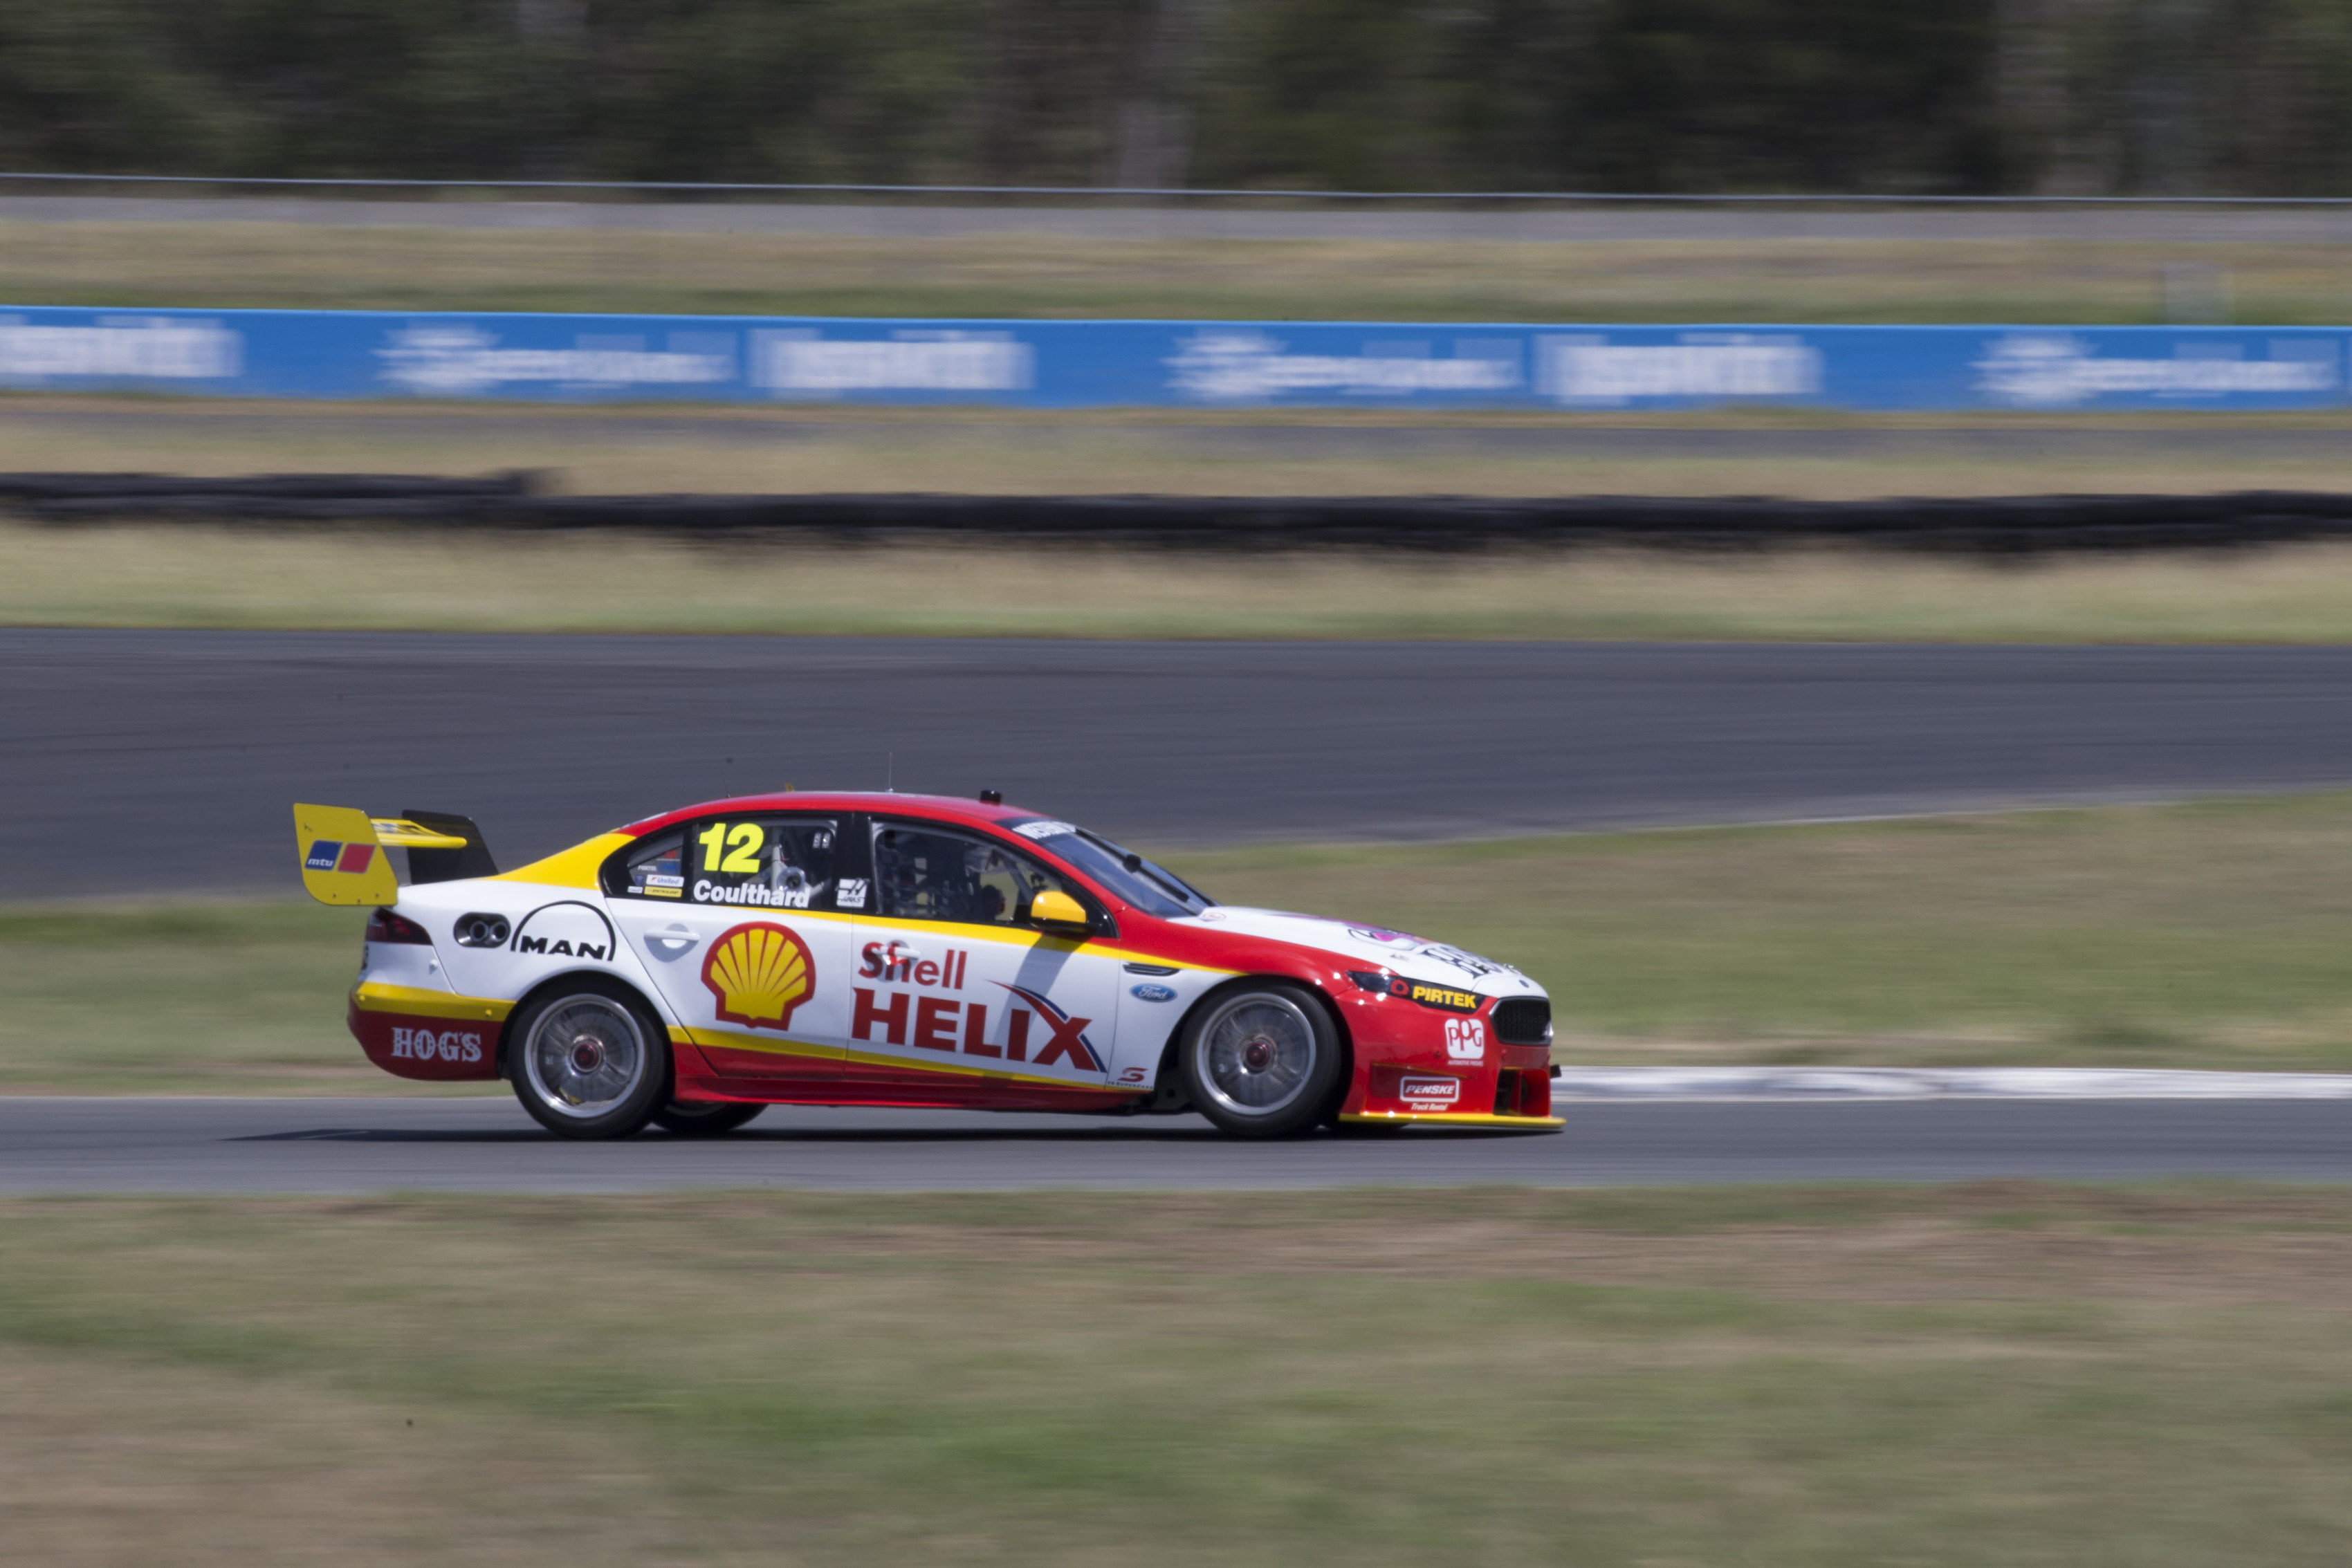 Fabian Coulthard during testing today at Queensland Raceway west of Brisbane  Australia, February 18, 2016.